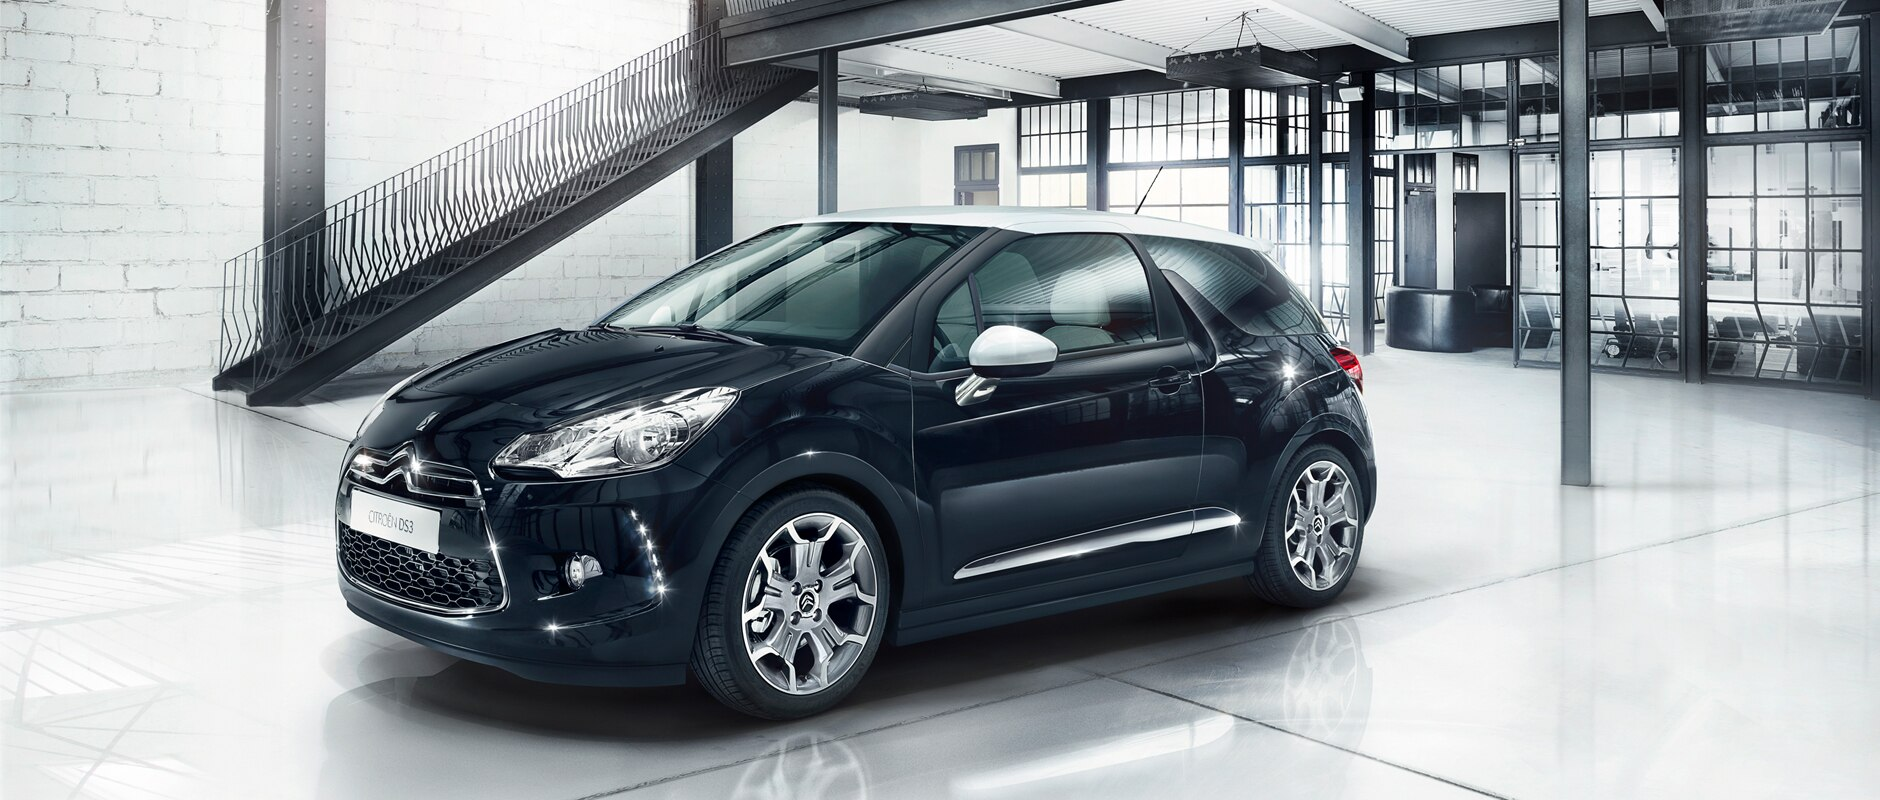 univers-citroen-ds3